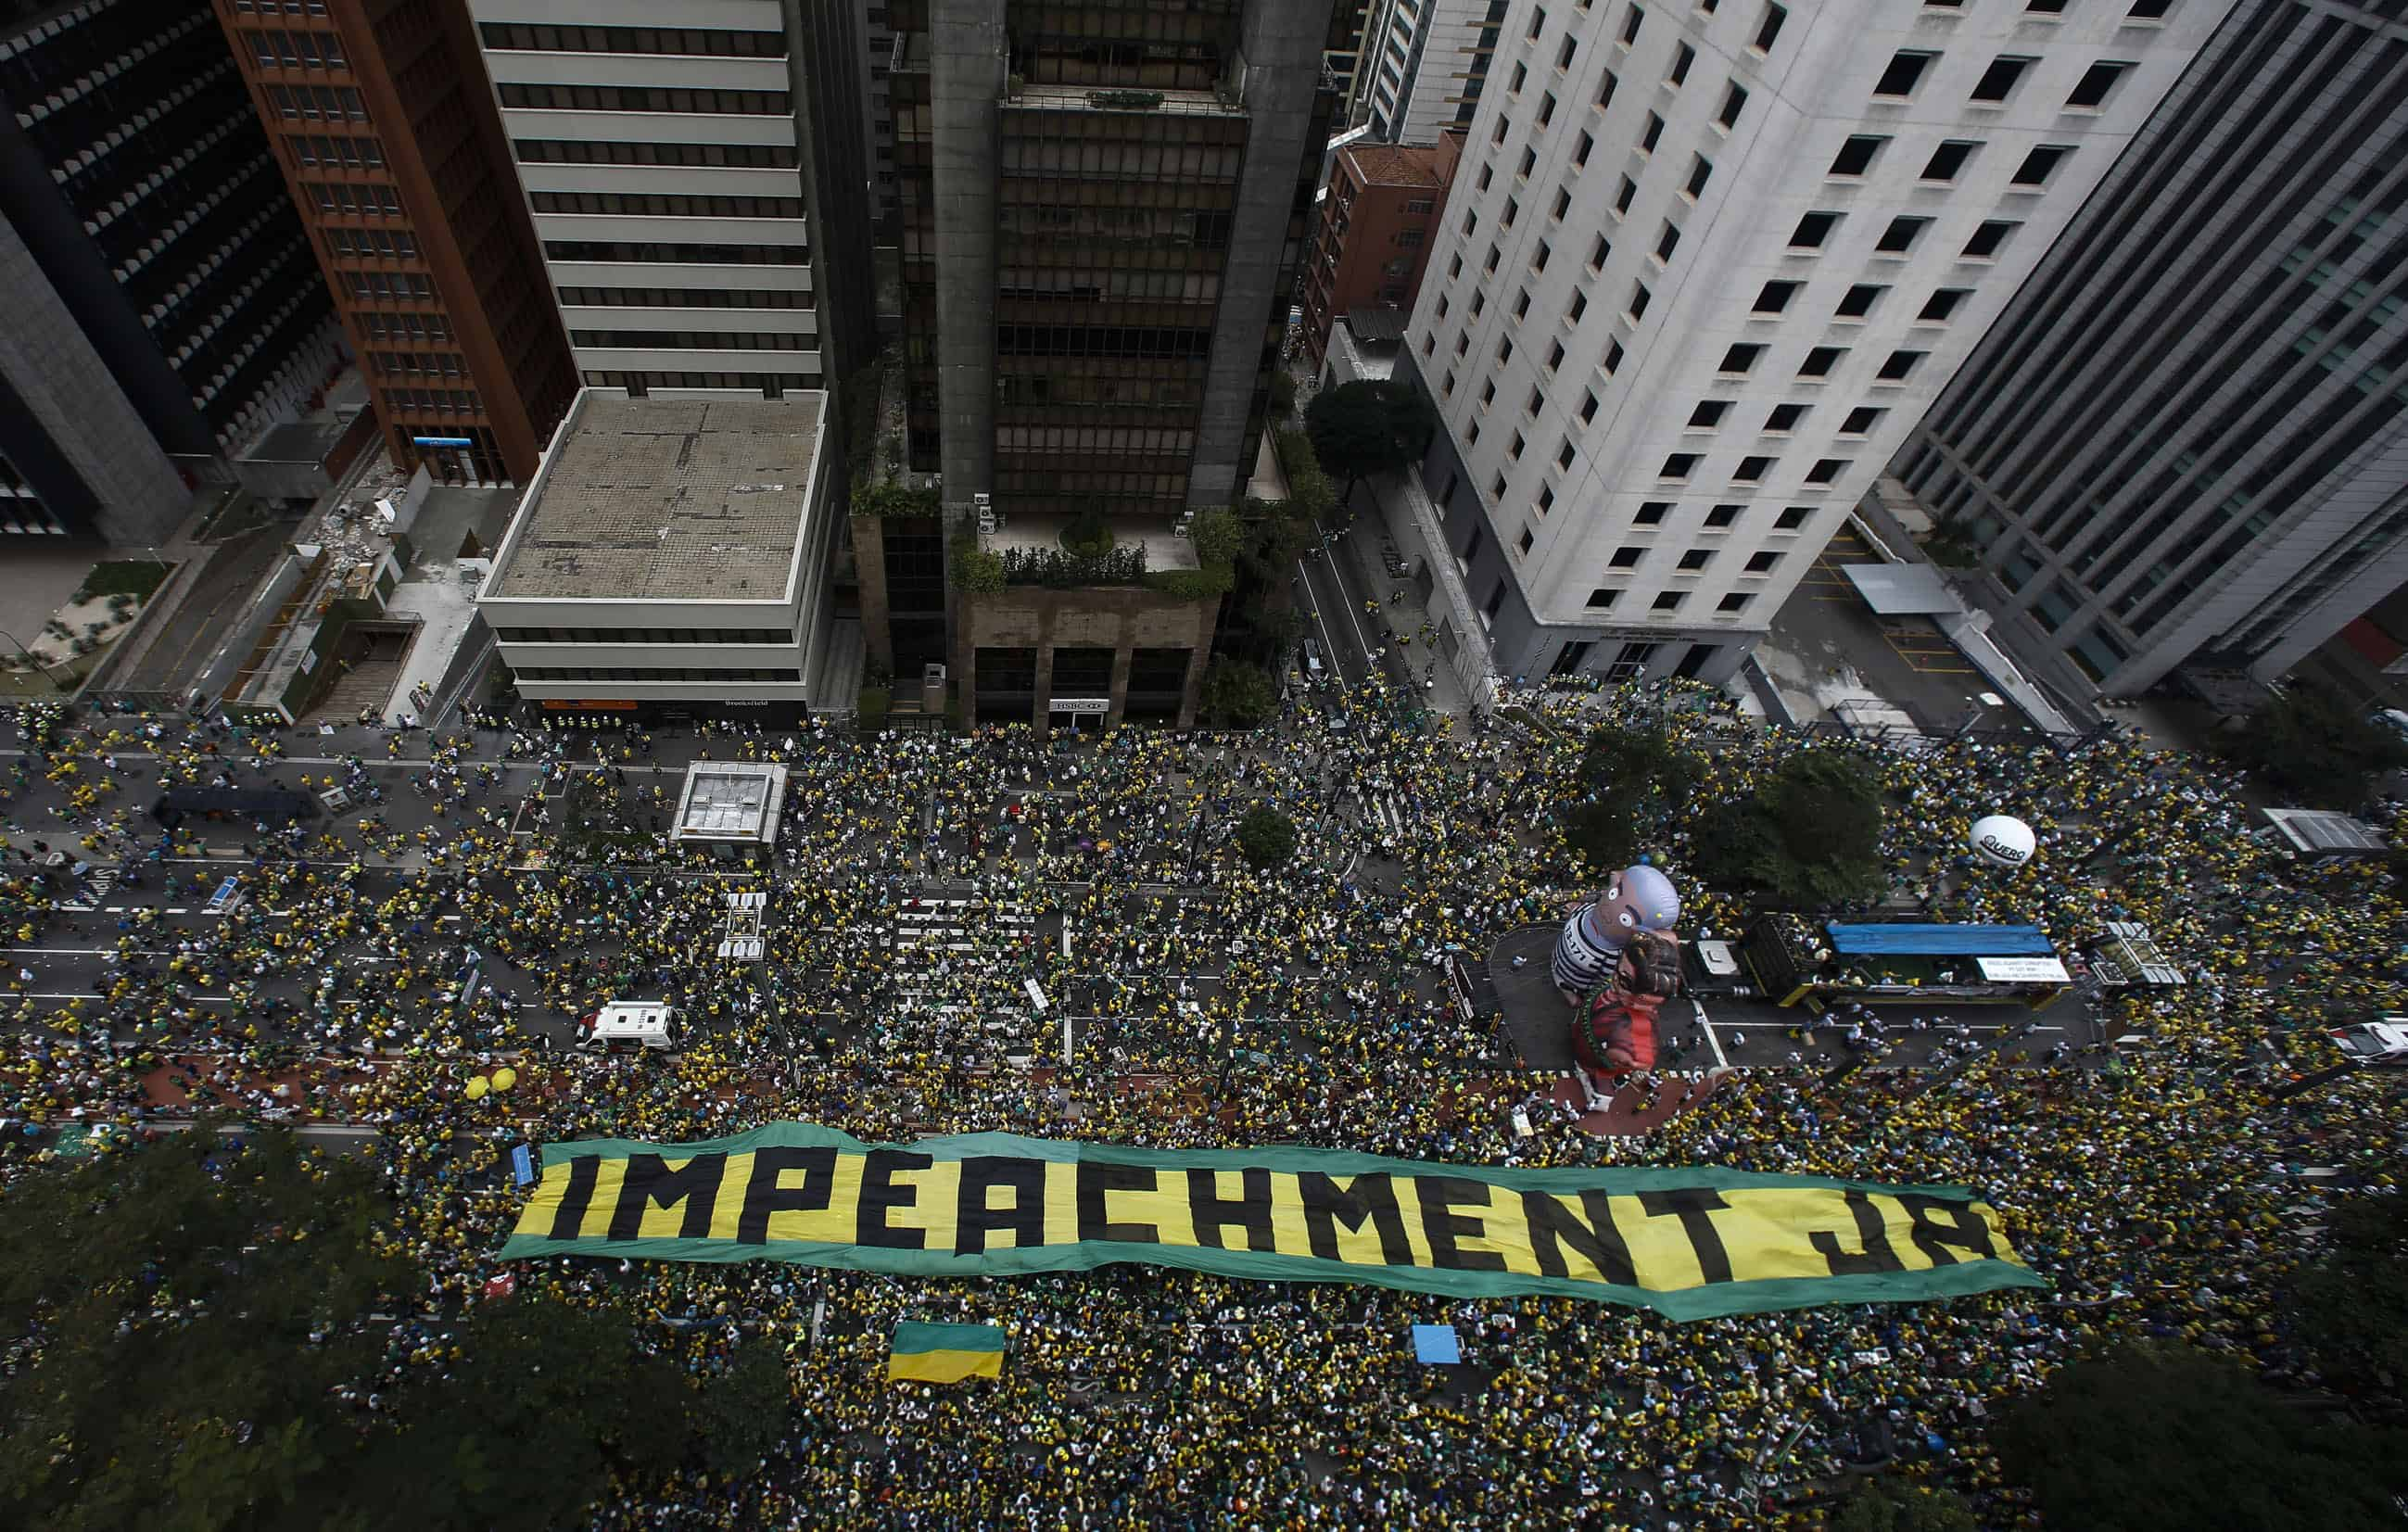 Protesters demand the resignation of Brazilian President Dilma Rousseff on March 13, 2016 in São Paulo.